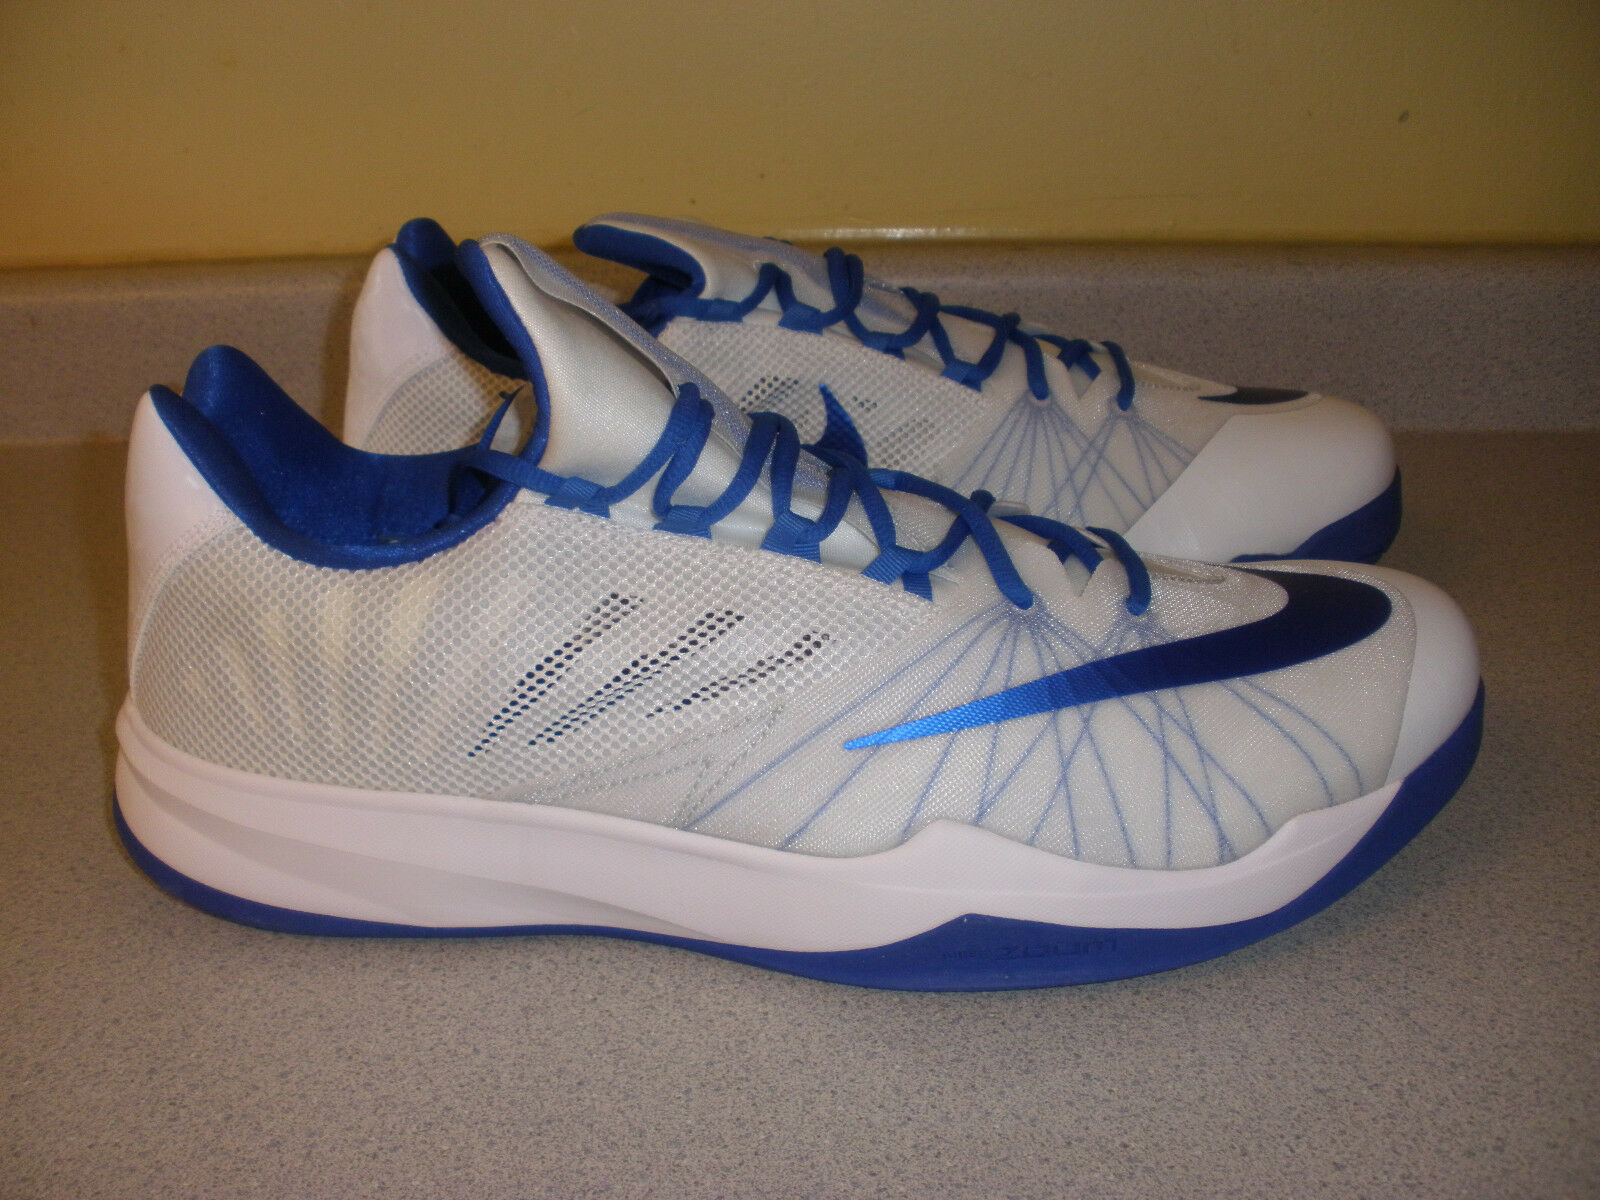 685779-140 NIKE Zoom Run The One TB Basketball Shoes Blue White Size 18